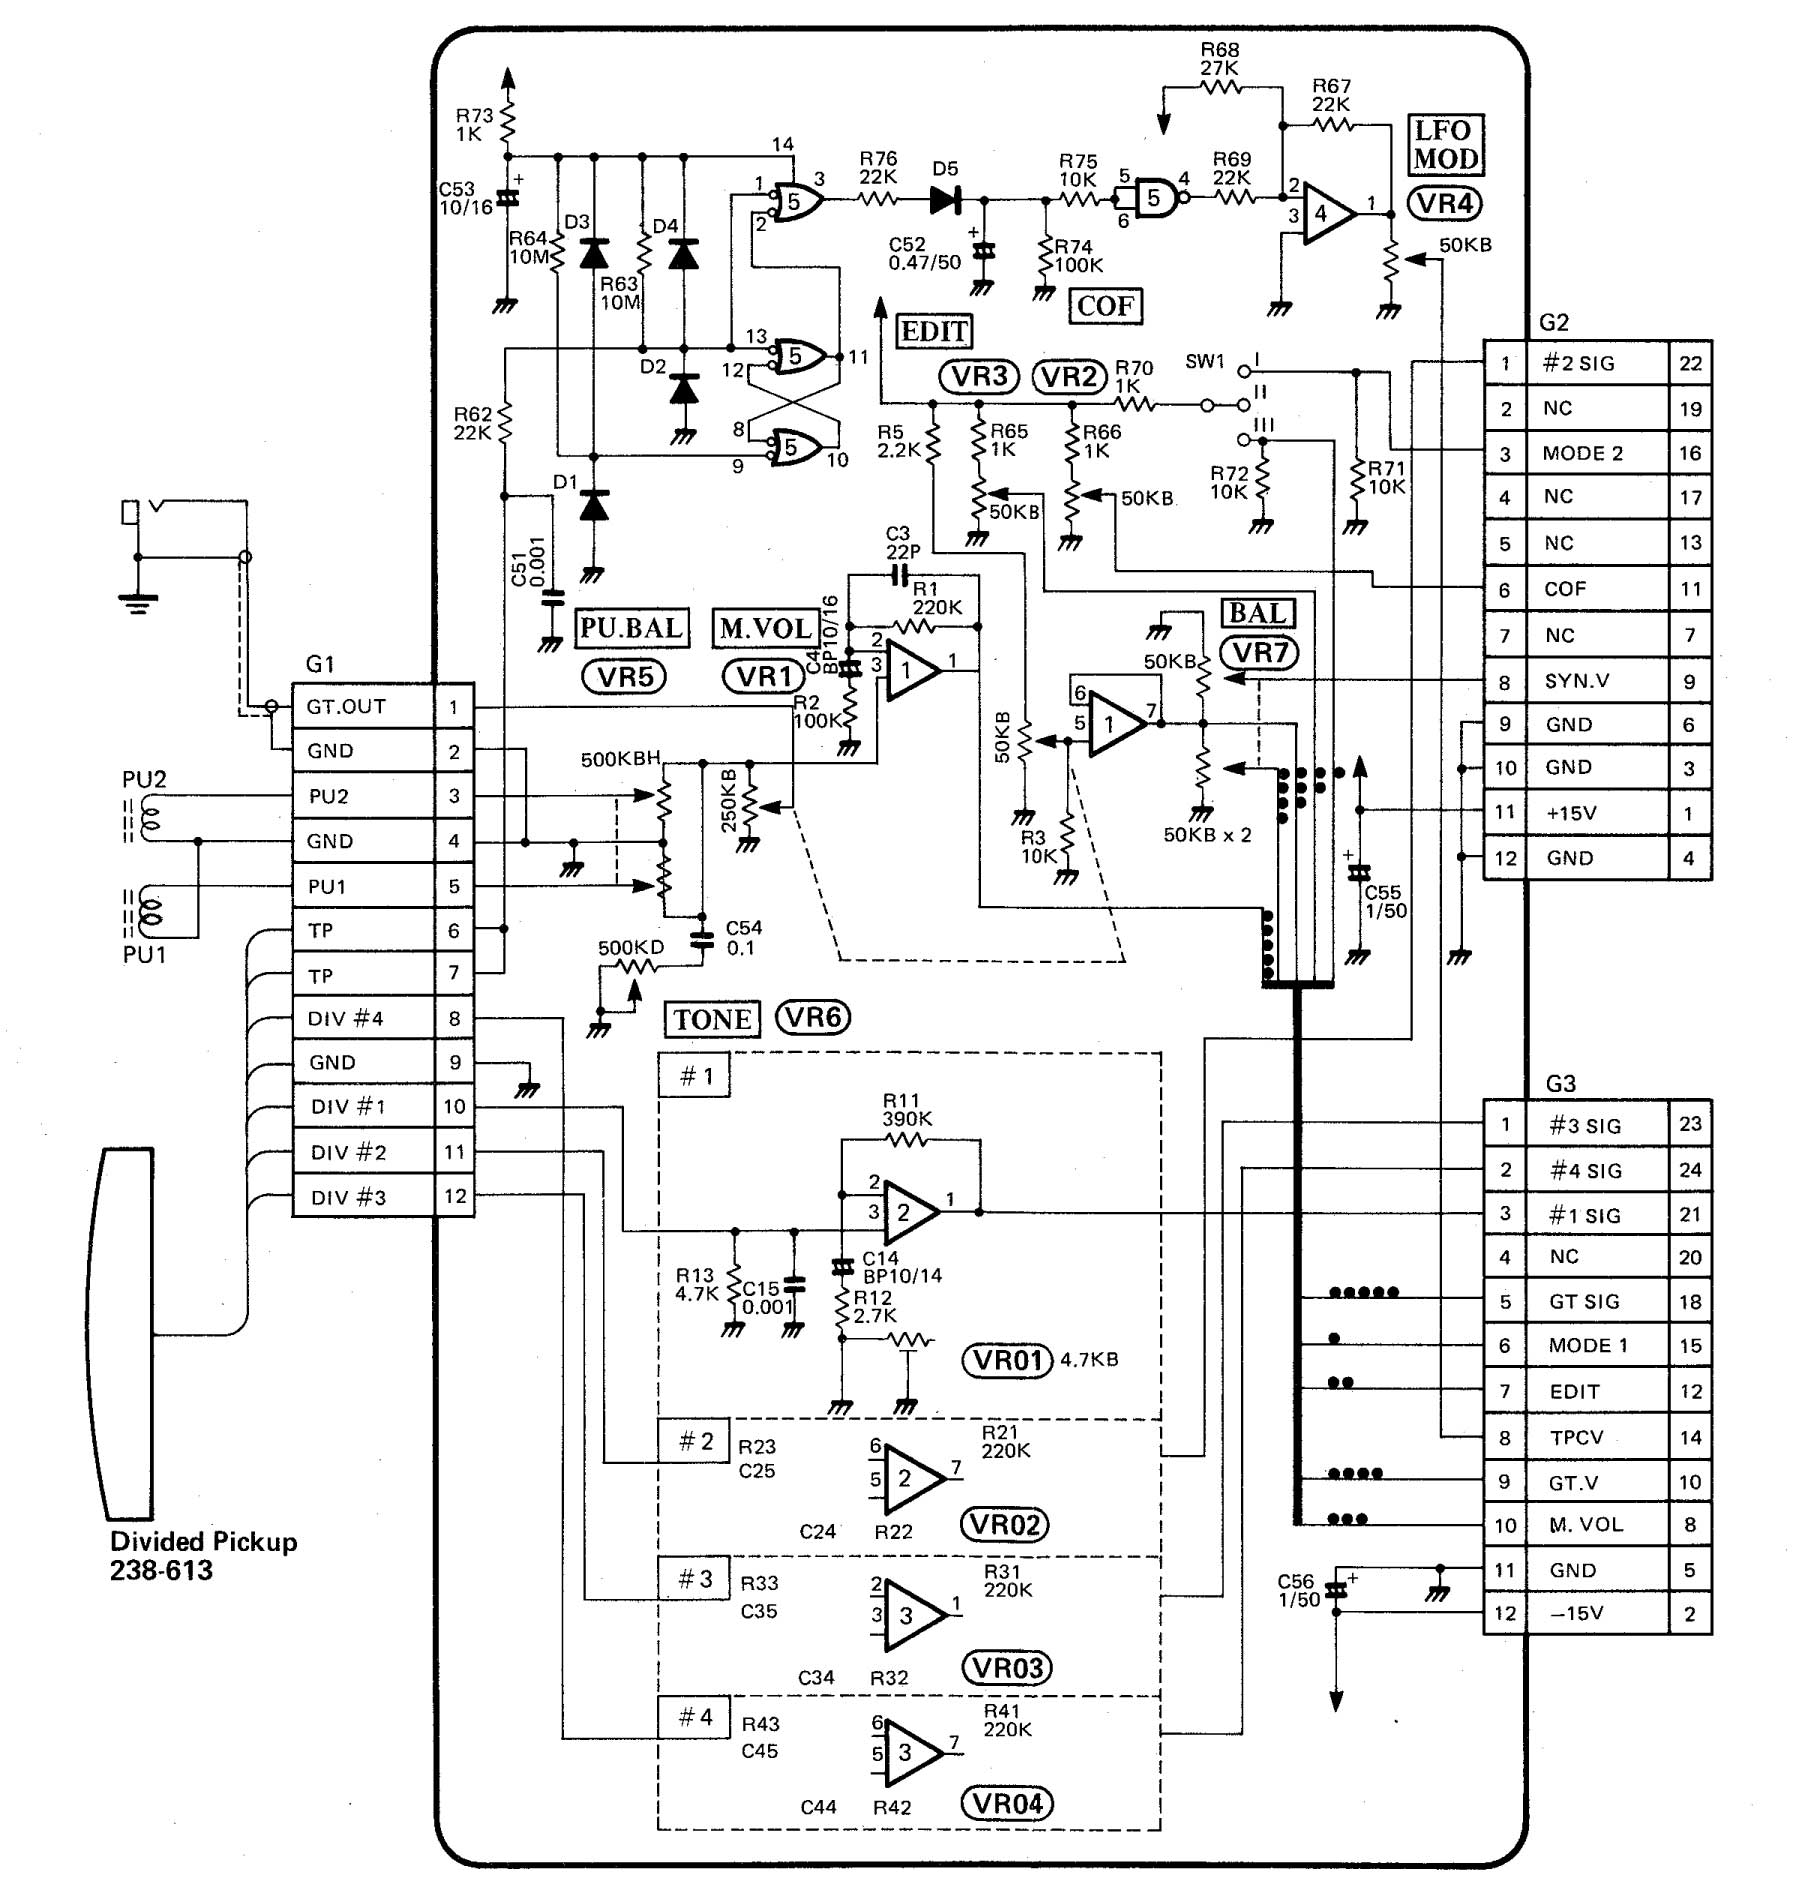 1998 Honda Passport Radio Wiring Diagram